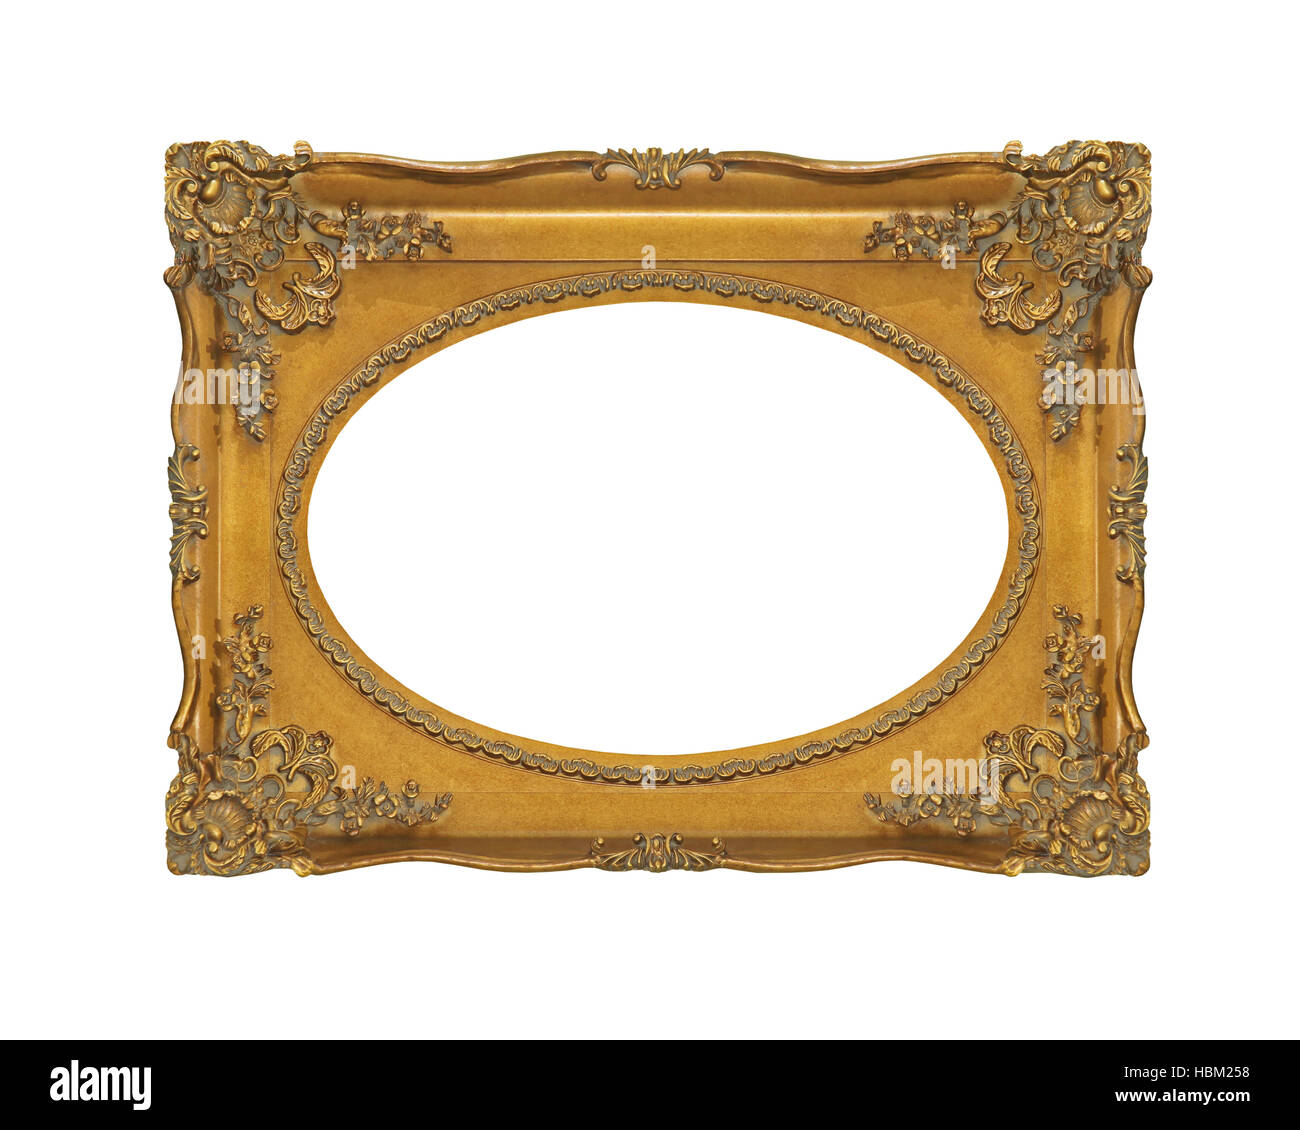 Oval Frame Gold Stock Photos & Oval Frame Gold Stock Images - Alamy